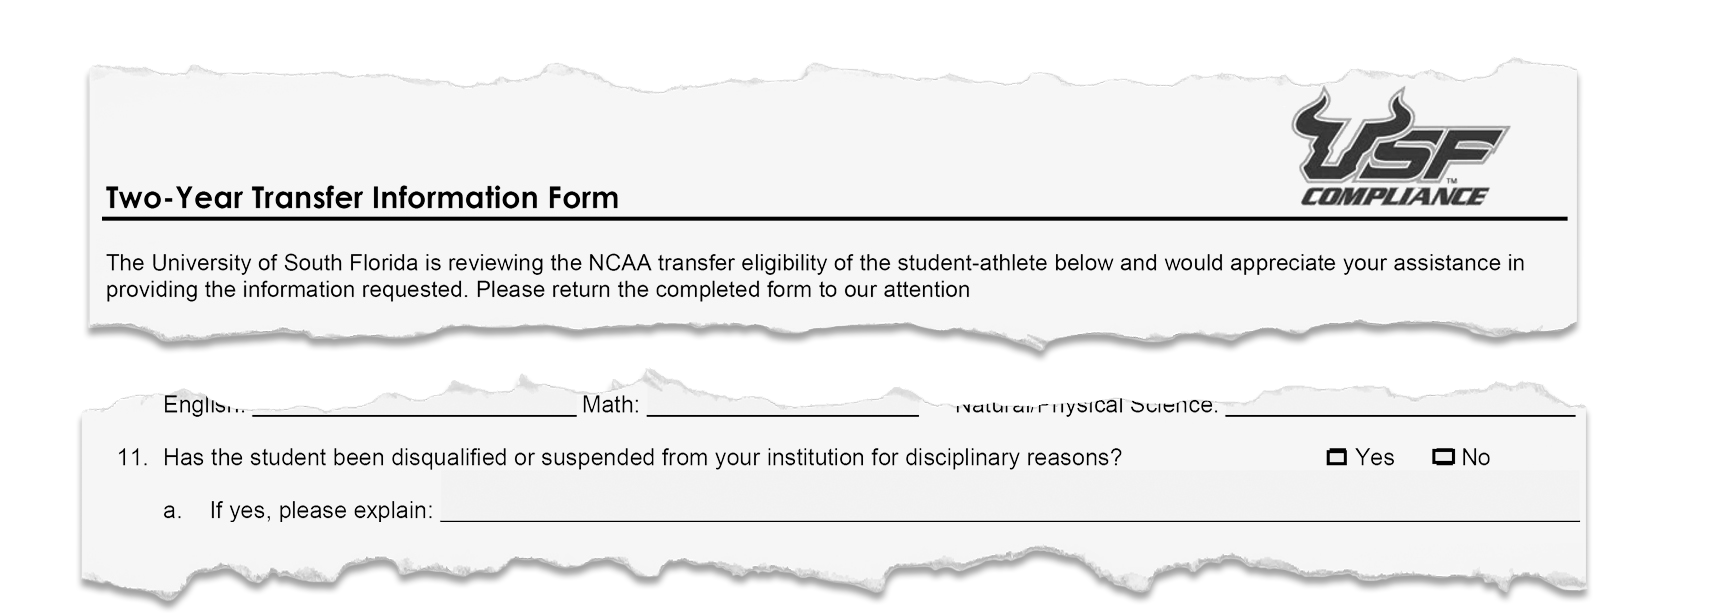 Two-year transfer tracer form.